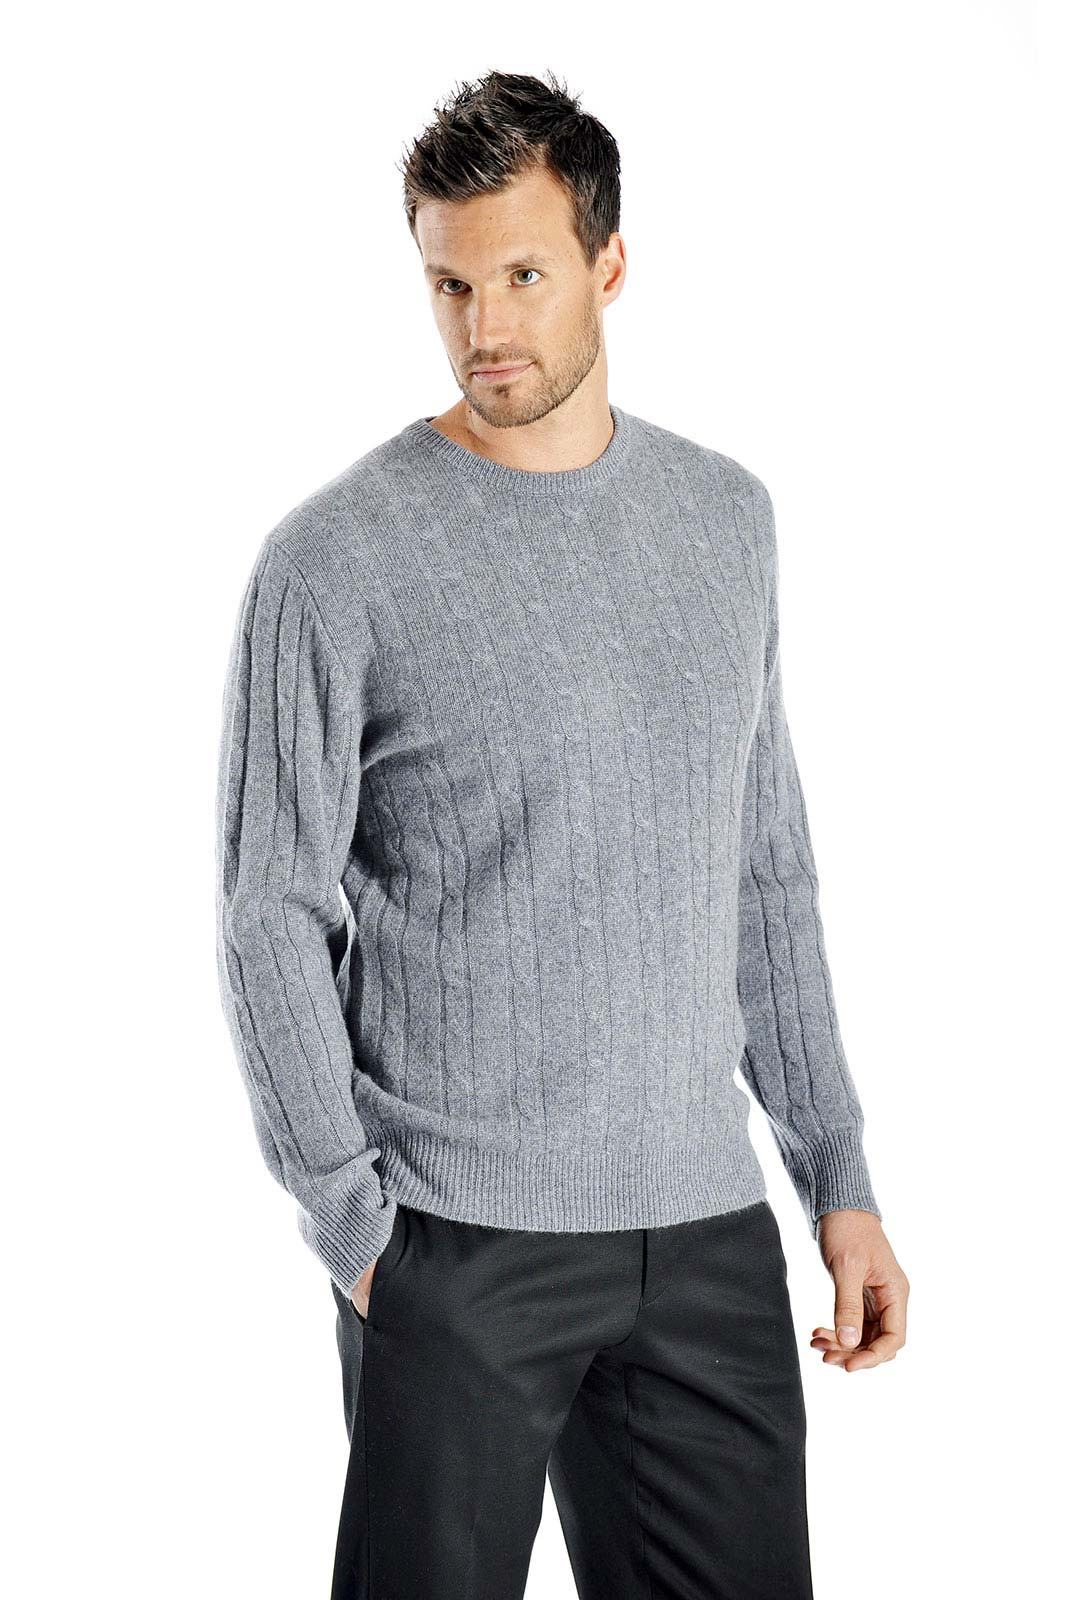 Add an extra layer of style to your outfit with men's sweaters from Paul Fredrick. Shop striking solid & patterned sweaters and men's shirts today Silk, Cotton, & Cashmere Zip Neck Sweater Silk, Cotton, & Cashmere Zip Neck Sweater. $ 2 for $ Cotton Cable Zip Neck Sweater Cotton Cable Zip Neck Sweater. $